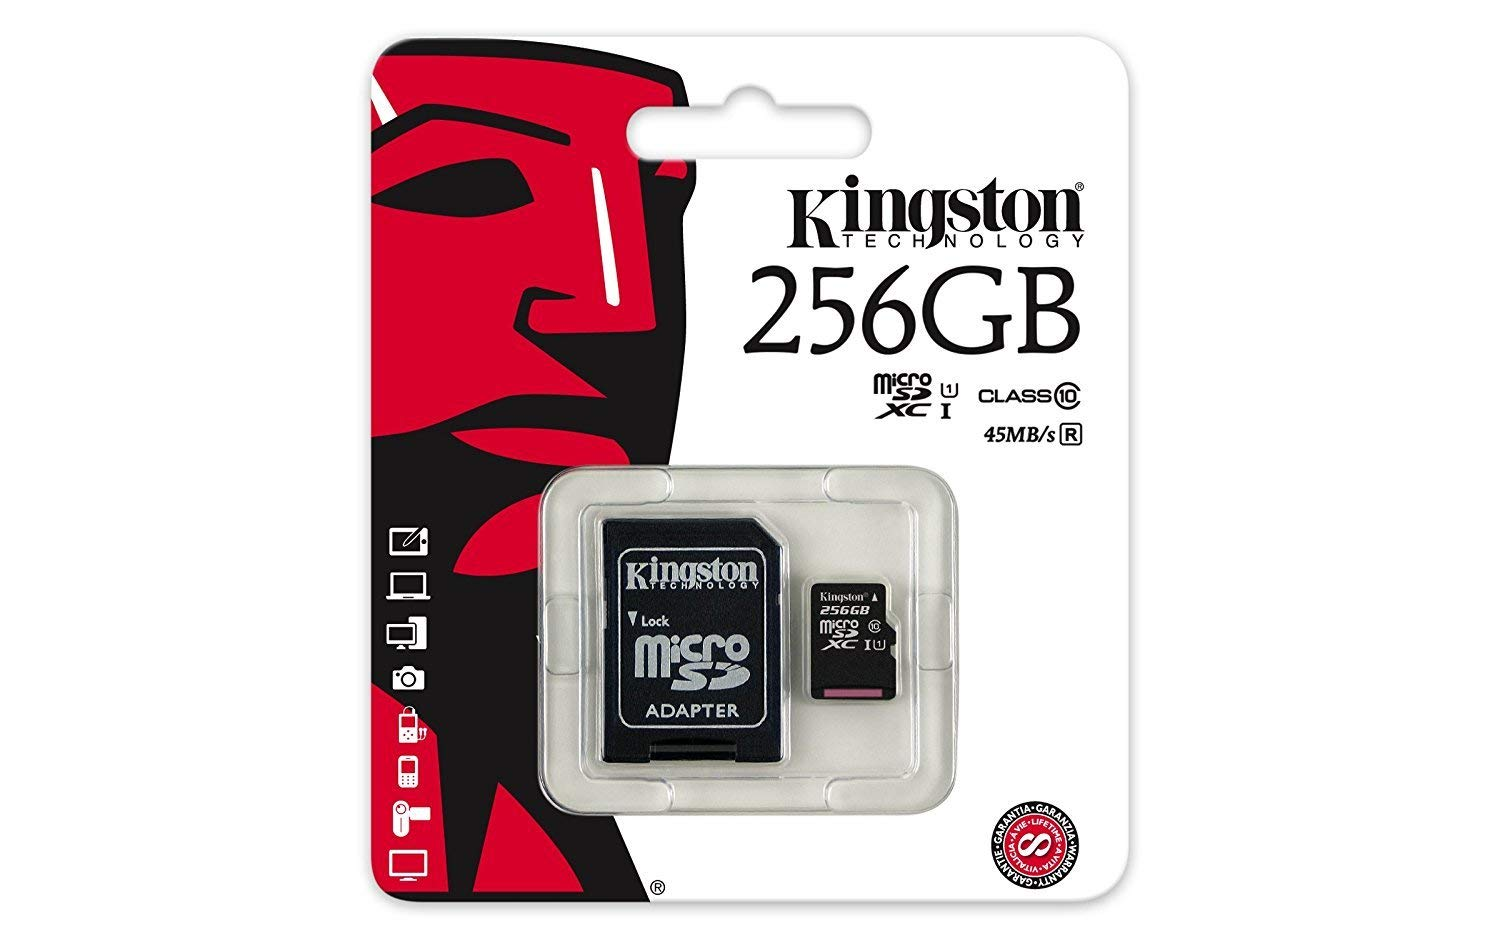 Professional Kingston 256GB Sony Xperia XA2 Ultra MicroSDXC Card with Custom formatting and Standard SD Adapter! (Class 10, UHS-I)